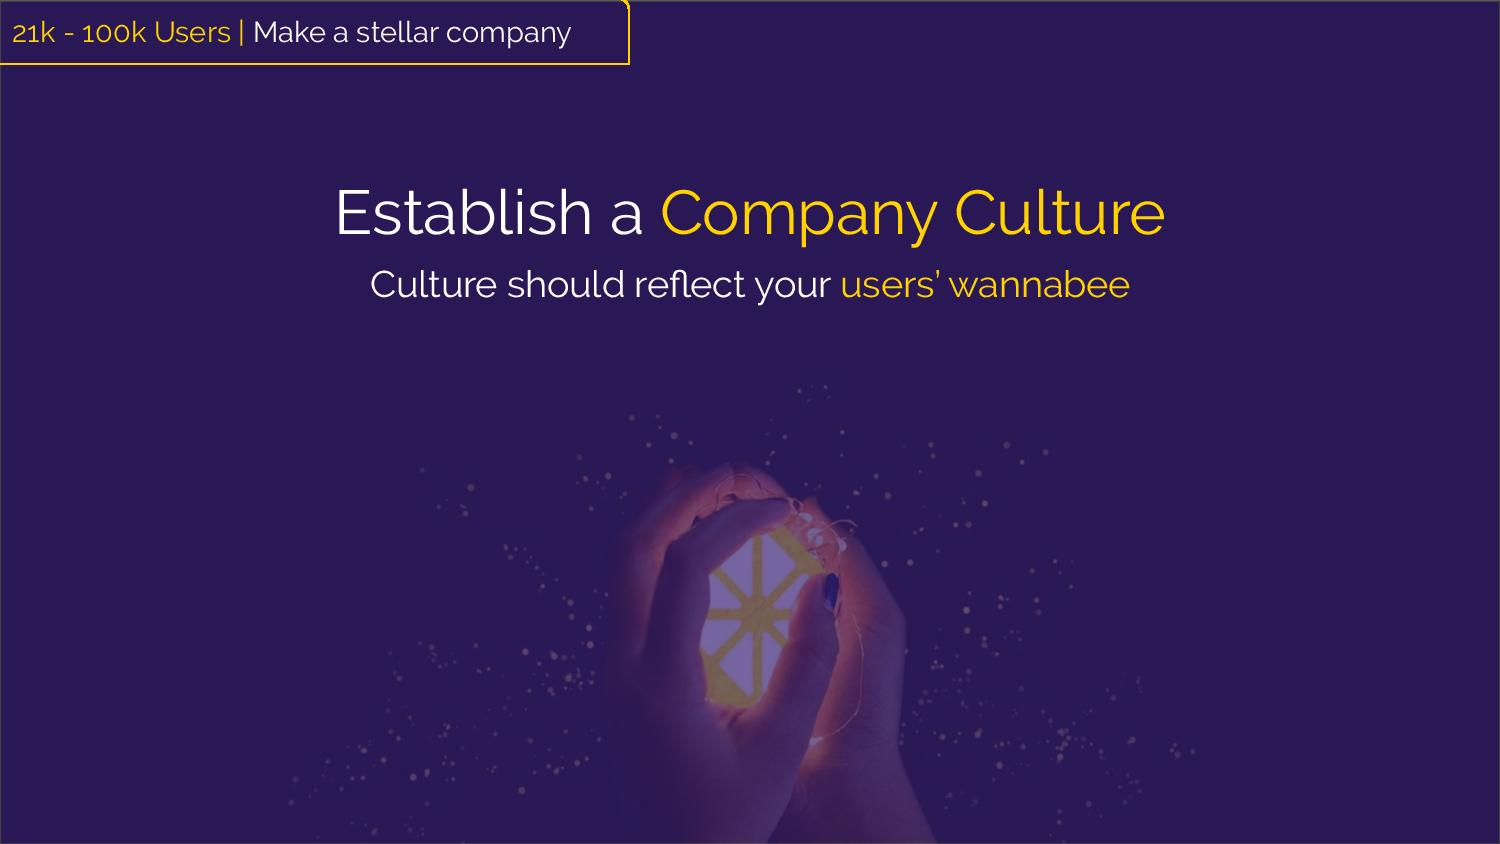 """Establish a Company Culture: Culture should reflect your users' wannabee""  [Image: hands embracing the Zest lemon slice logo]"